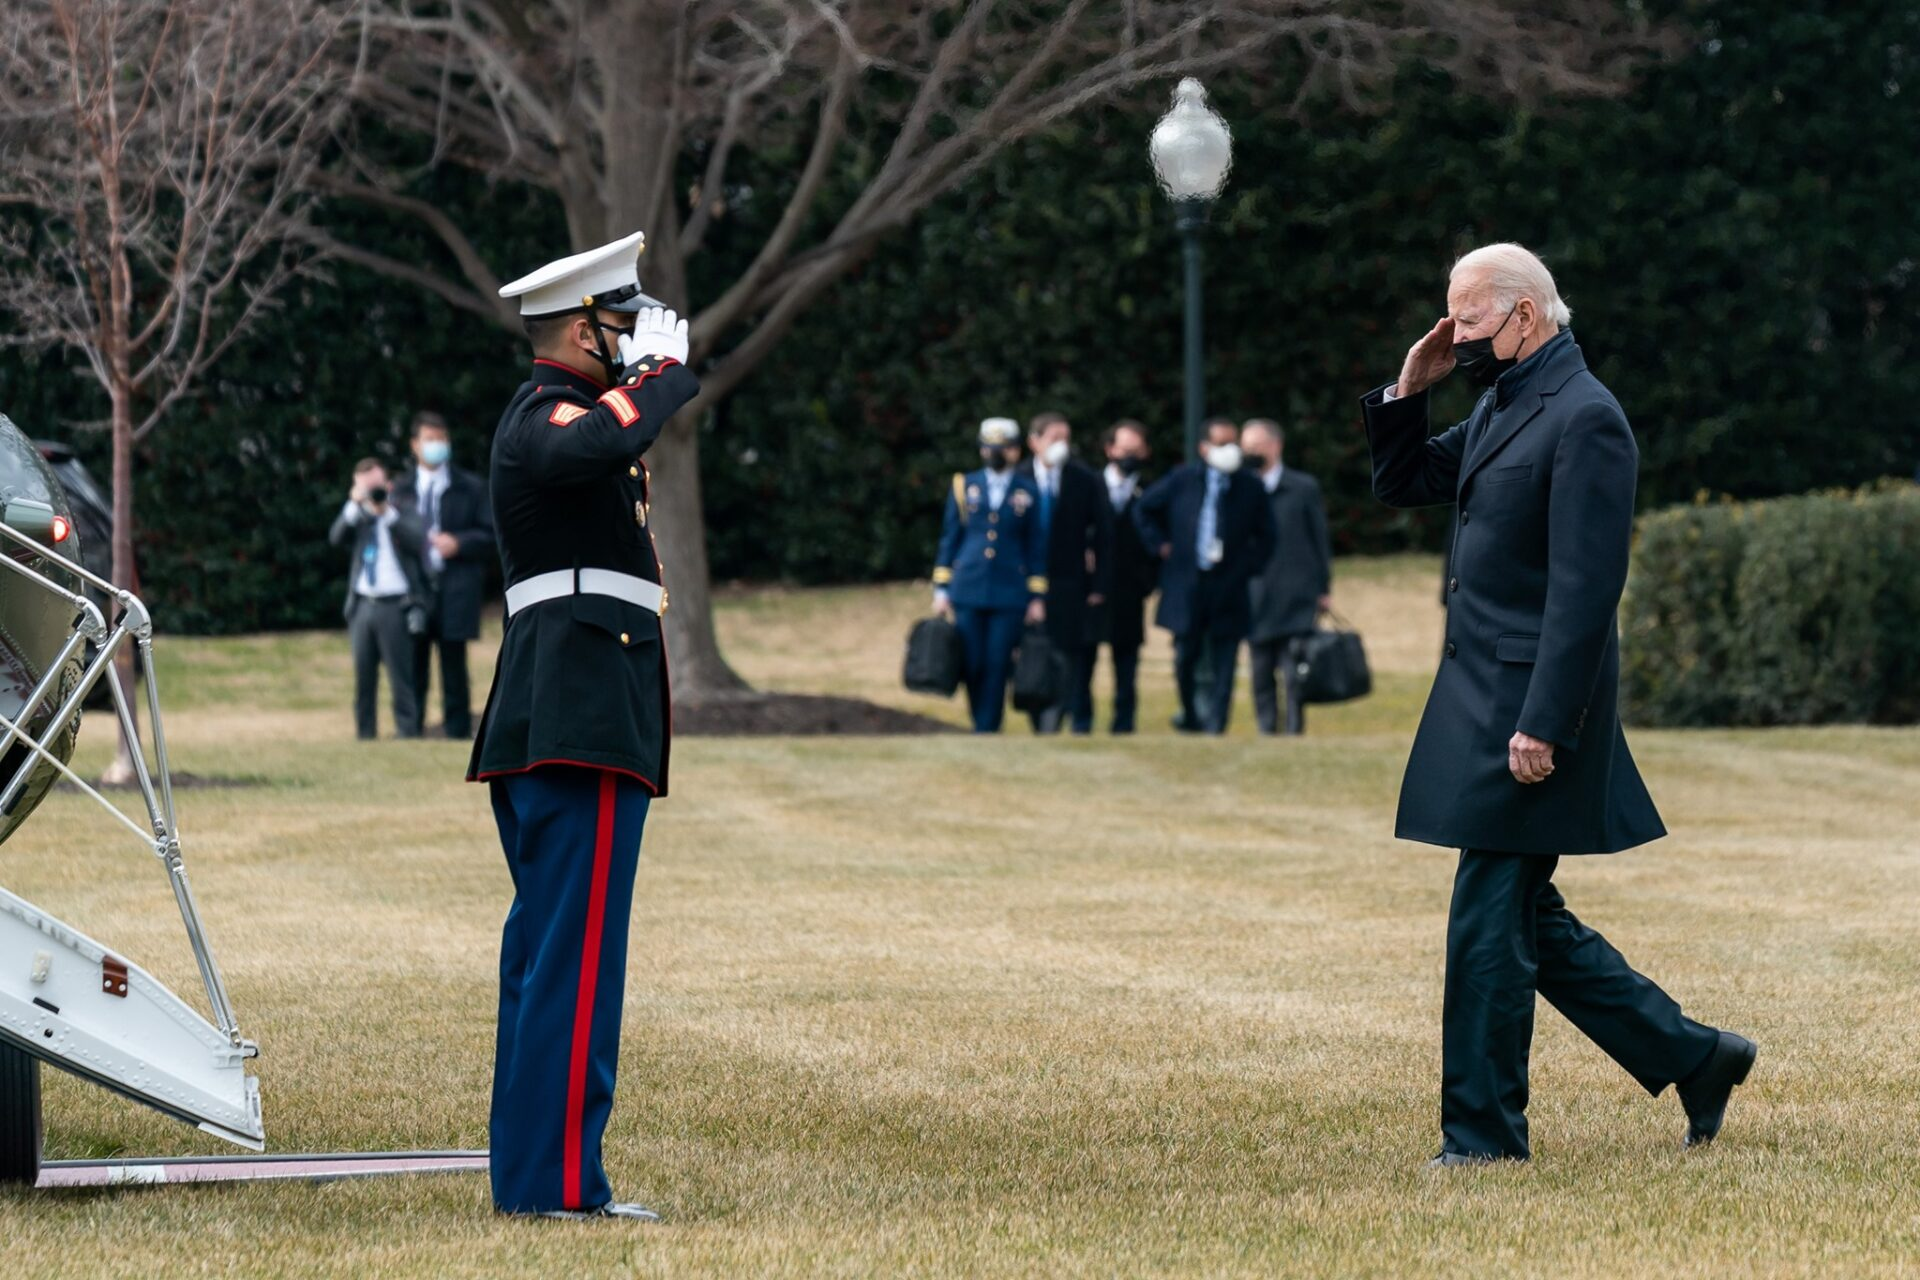 President Joe Biden salutes a member of the armed forces during his first visit to Walter Reed National Military Medical Center on Jan. 30. (Source: whitehouse.gov)